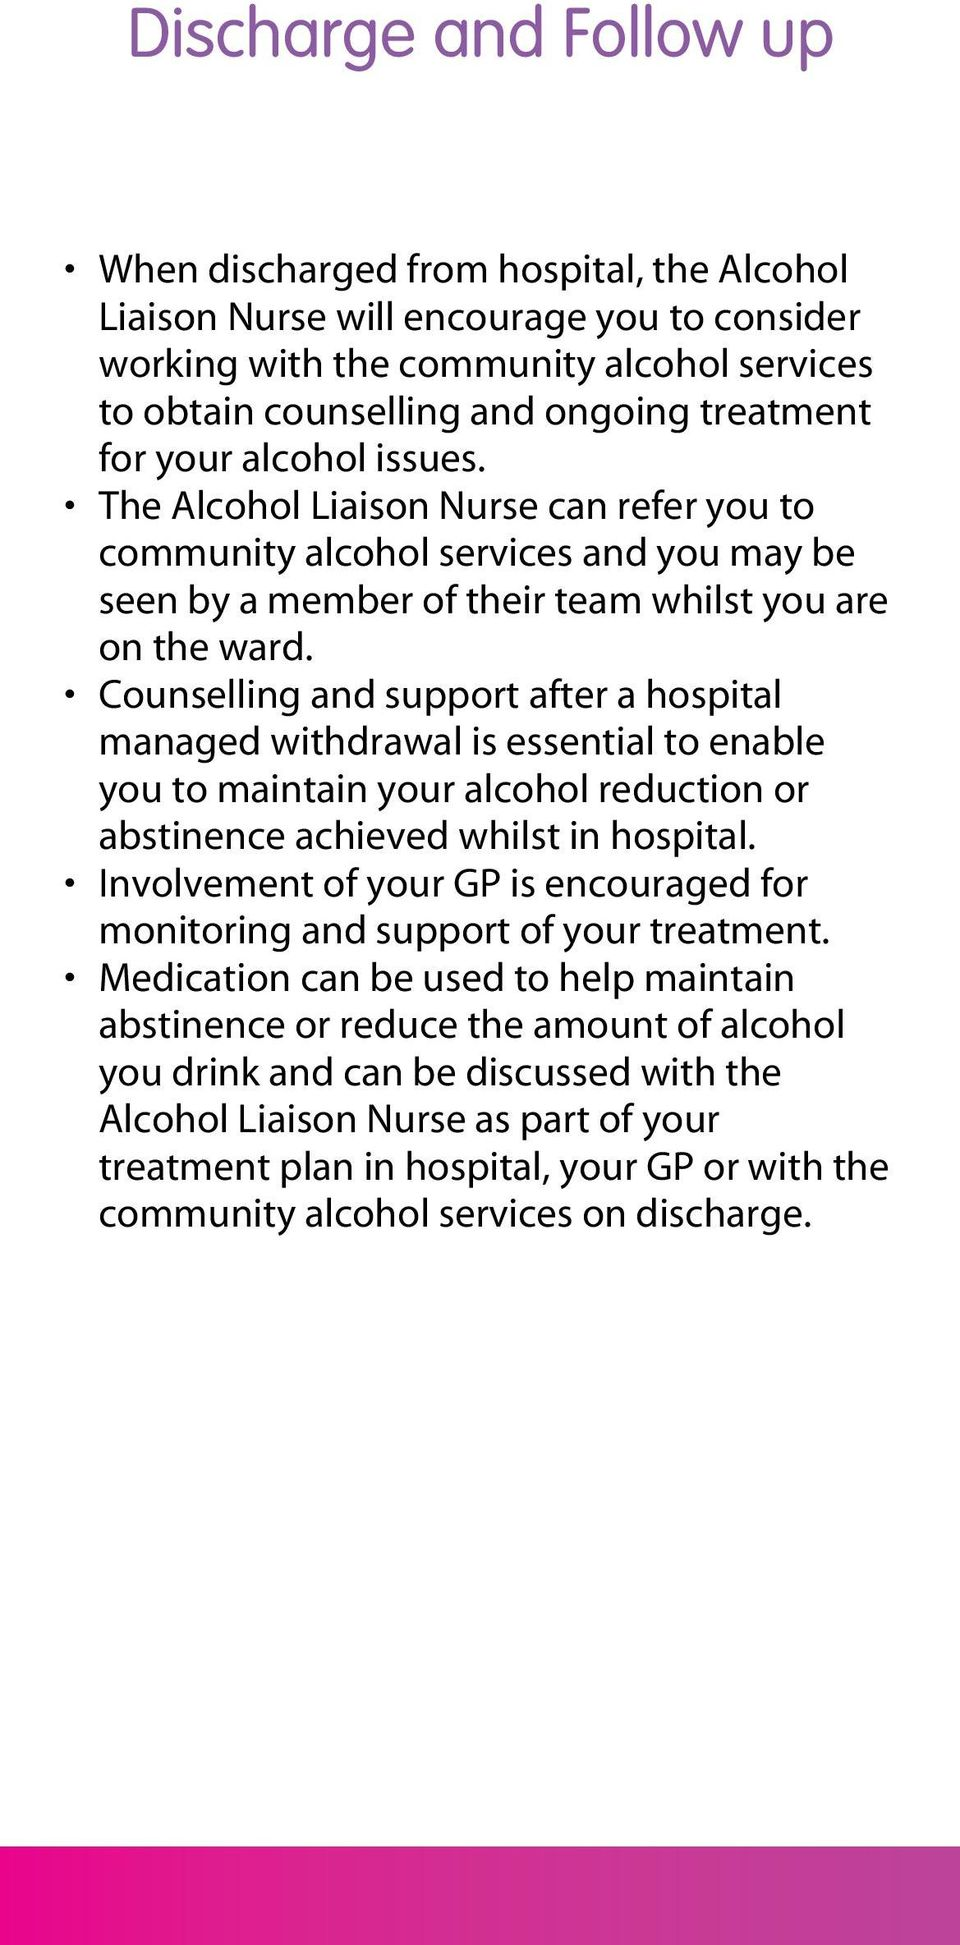 Counselling and support after a hospital managed withdrawal is essential to enable you to maintain your alcohol reduction or abstinence achieved whilst in hospital.